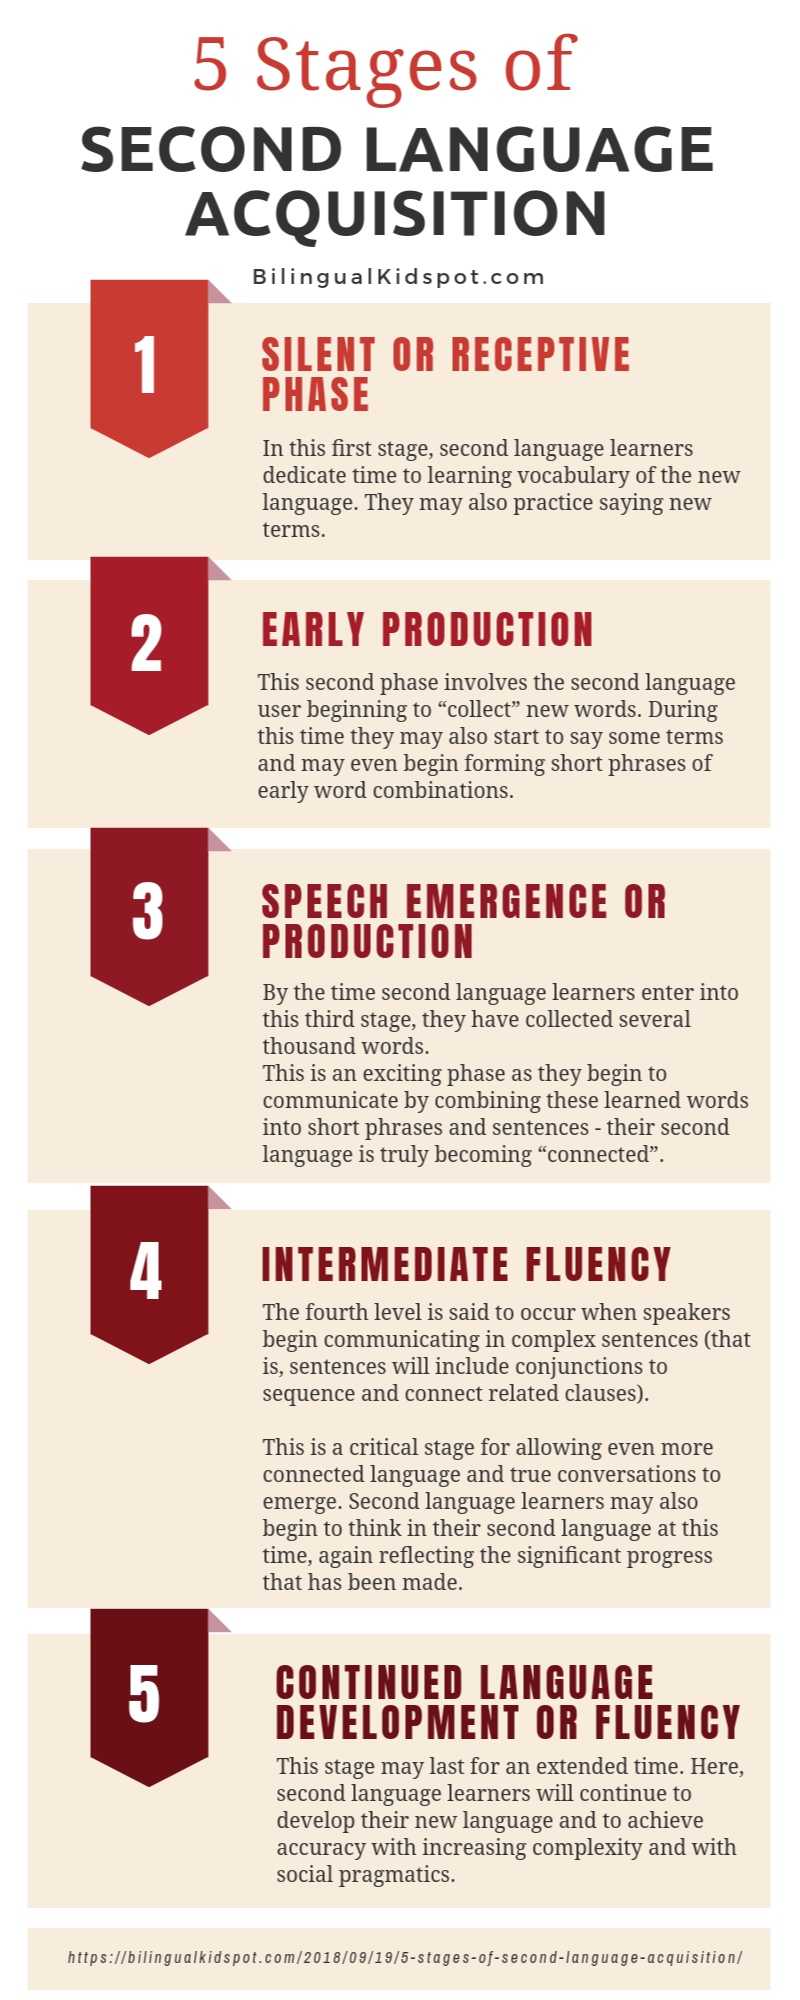 5-Stages-of-second-language-acquisition-infographic.jpg